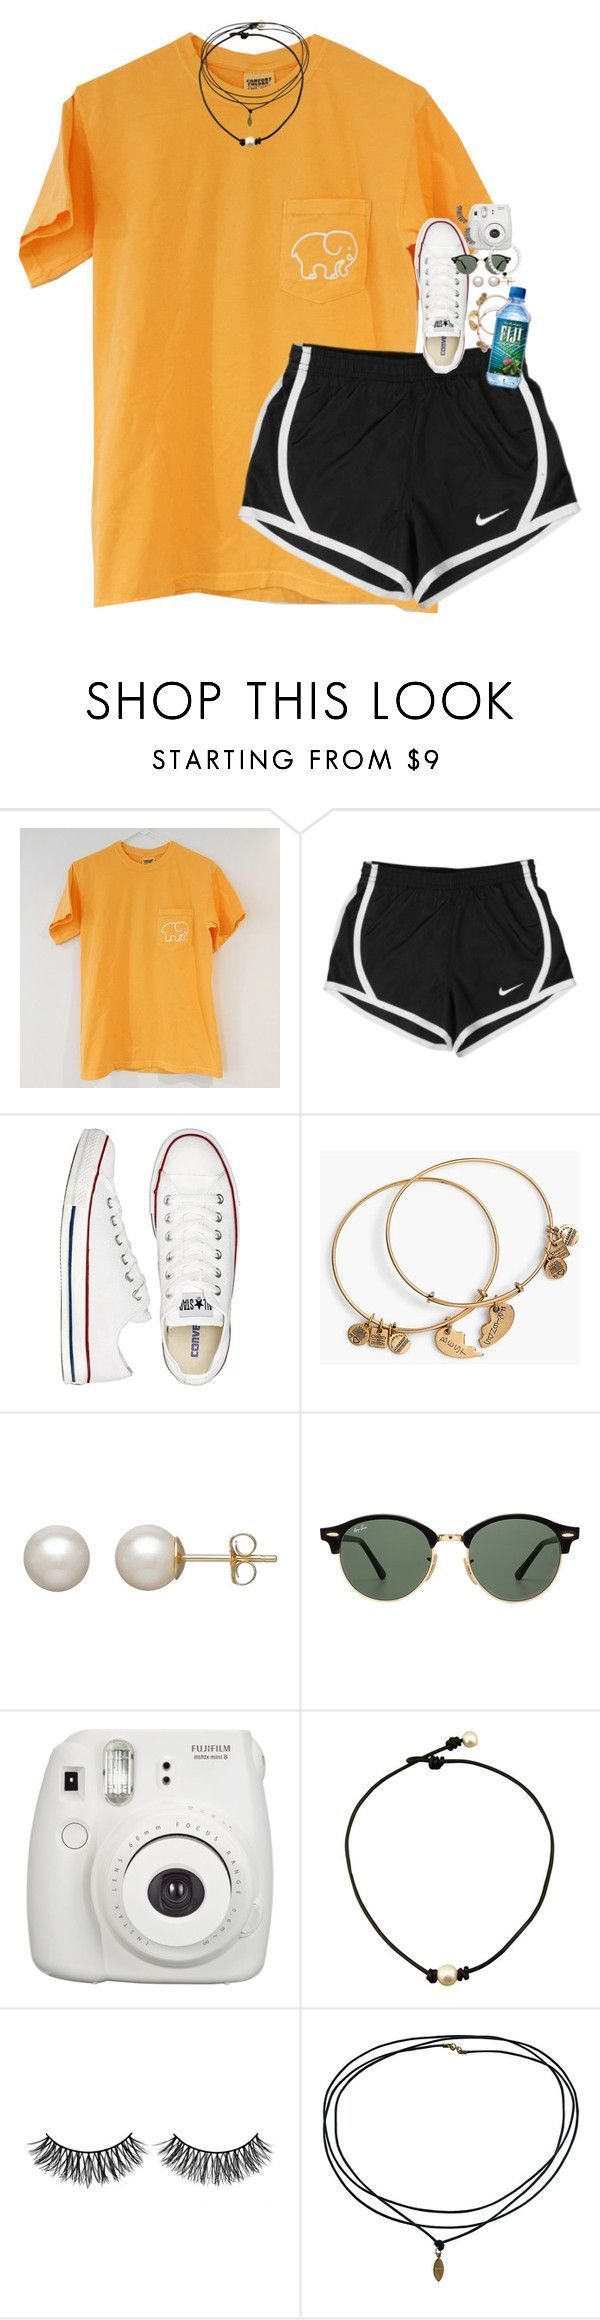 """Customized Set!!1111!!!"" by classynsouthern ❤ liked on Polyvore featuring NIKE, Converse, Alex and Ani, Honora, Ray-Ban, Fujifilm and Rimini"